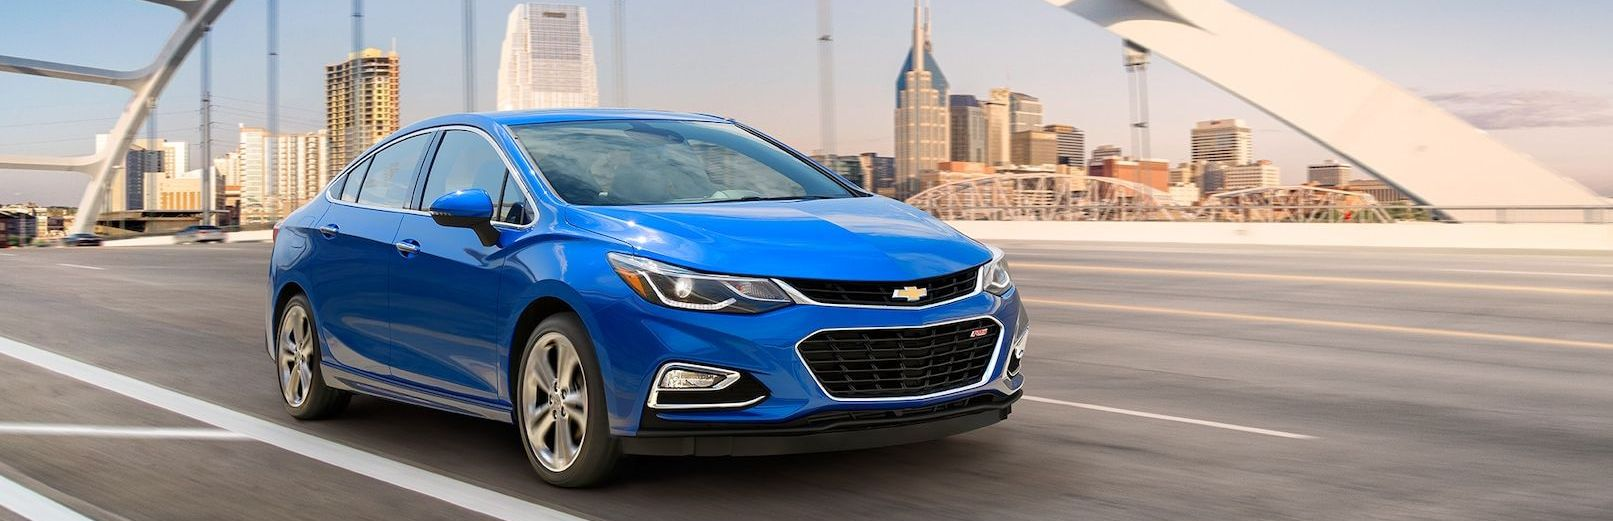 2018 Chevrolet Cruze Leasing in Watertown, SD